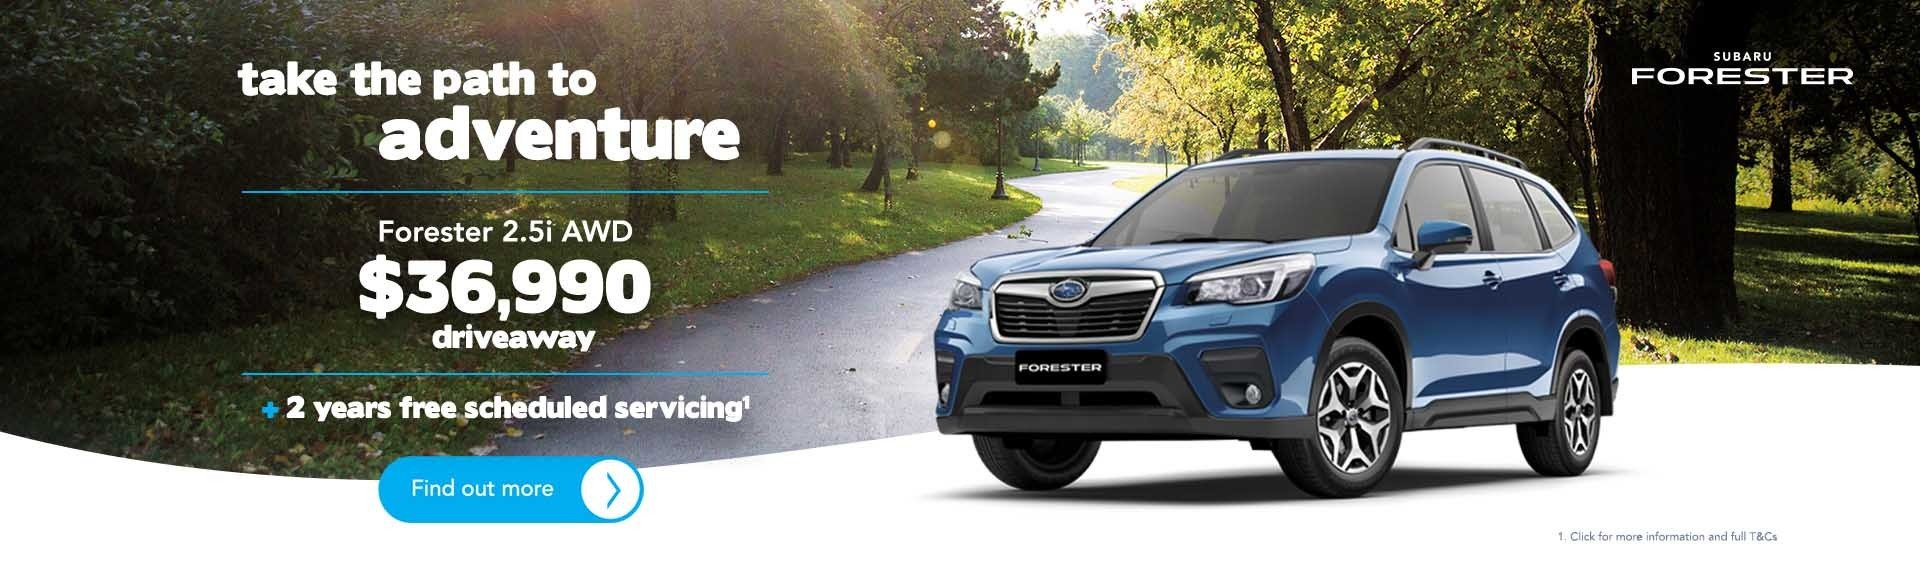 Trivett Subaru Parramatta - Forester Offer